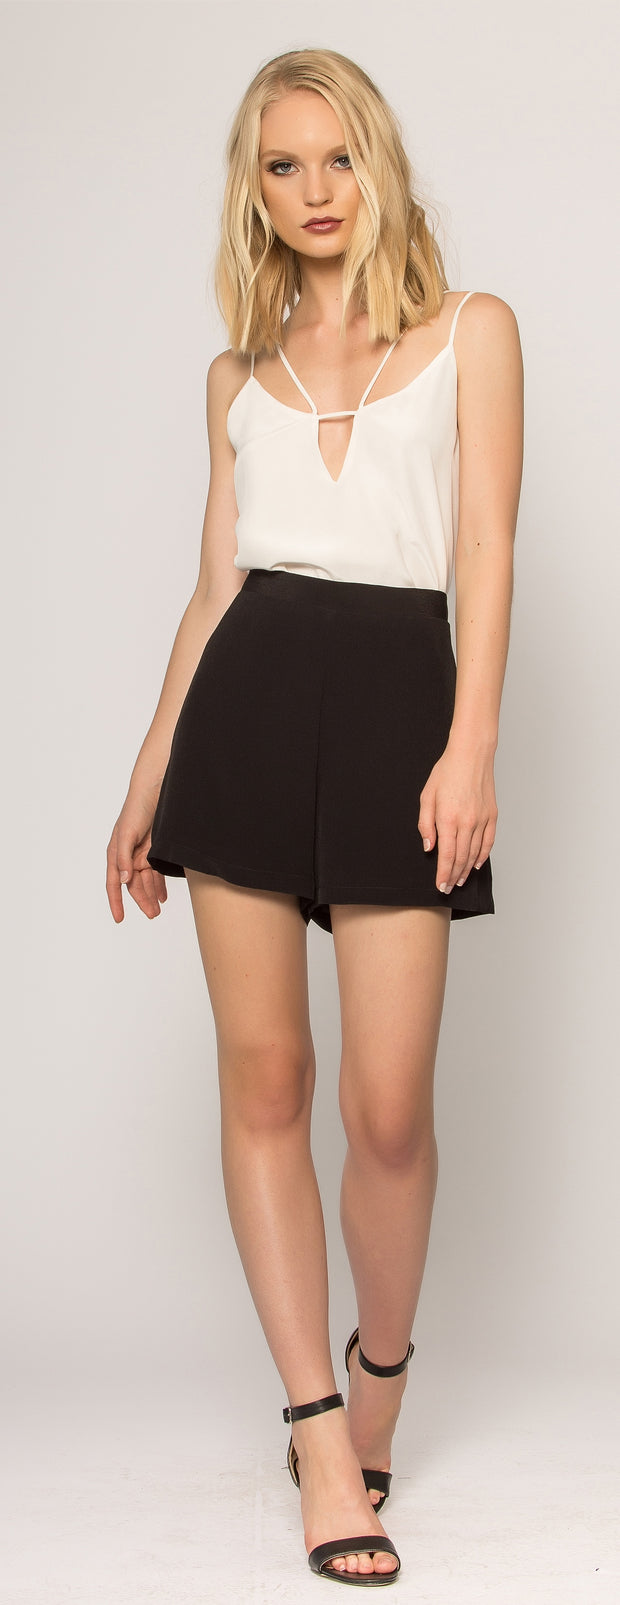 Black High Waist Shorts by Lavender Brown - 1